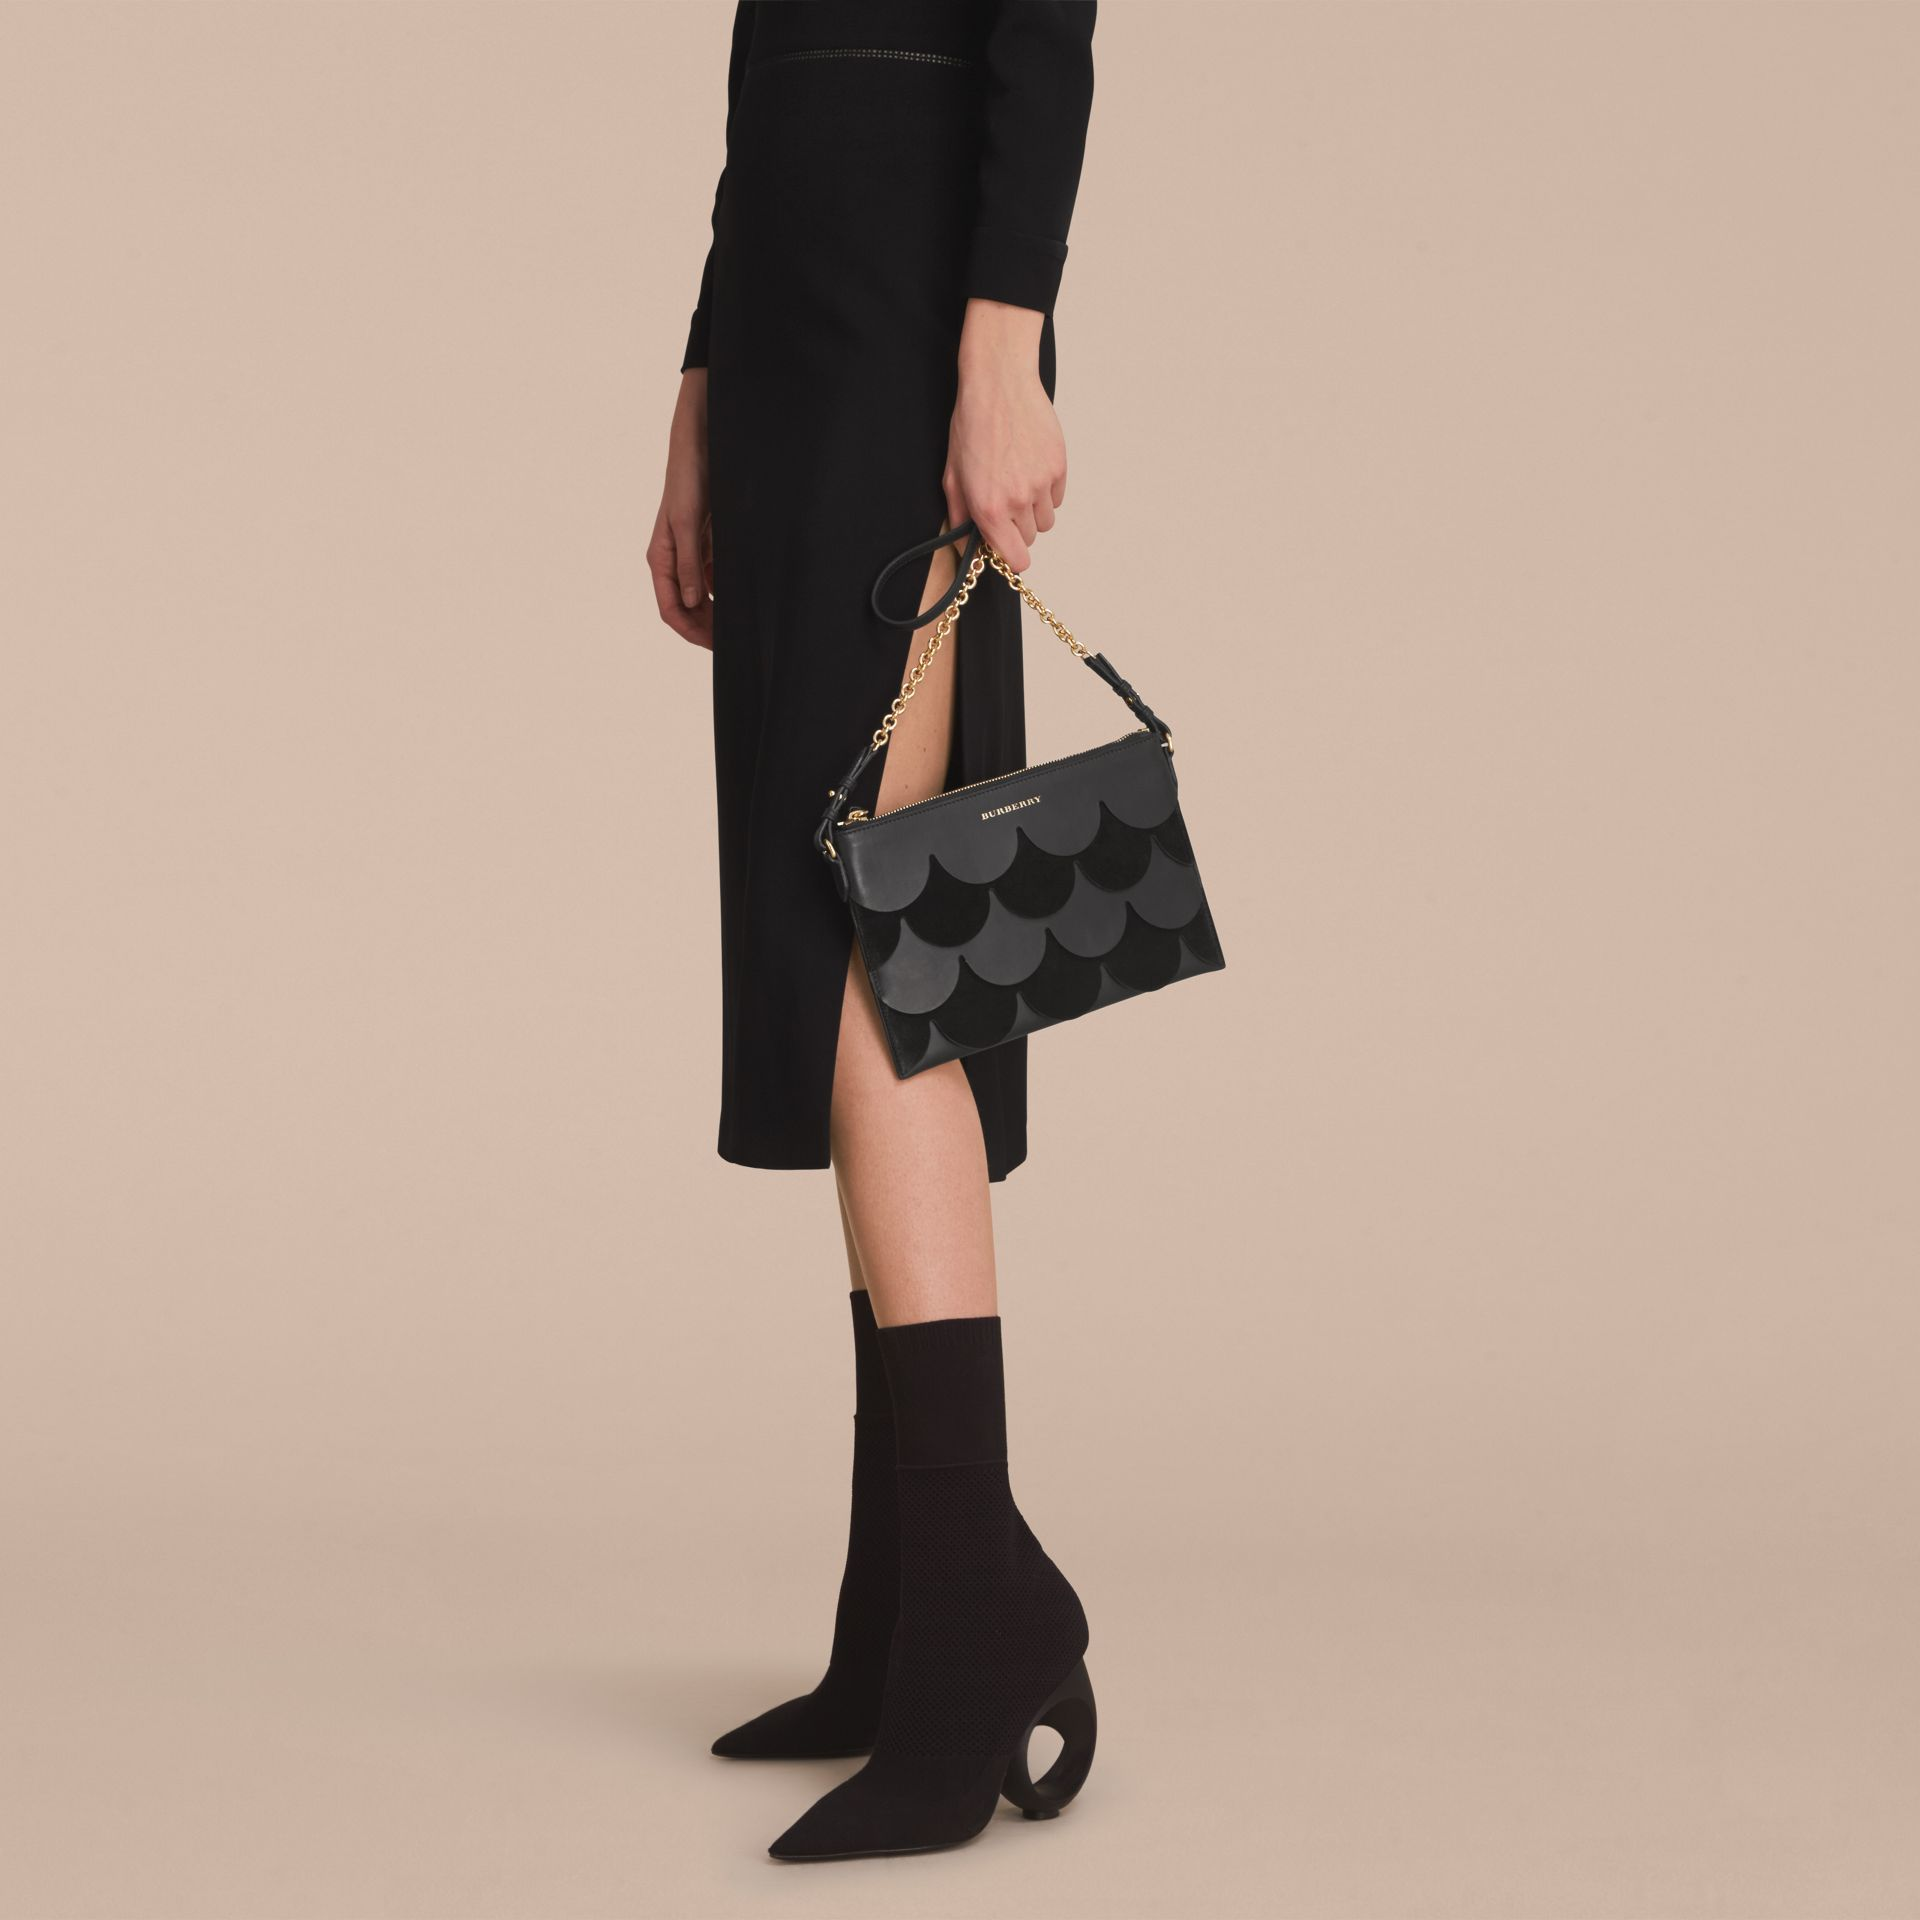 Two-tone Scalloped Leather and Suede Clutch Bag in Black - Women | Burberry - gallery image 3